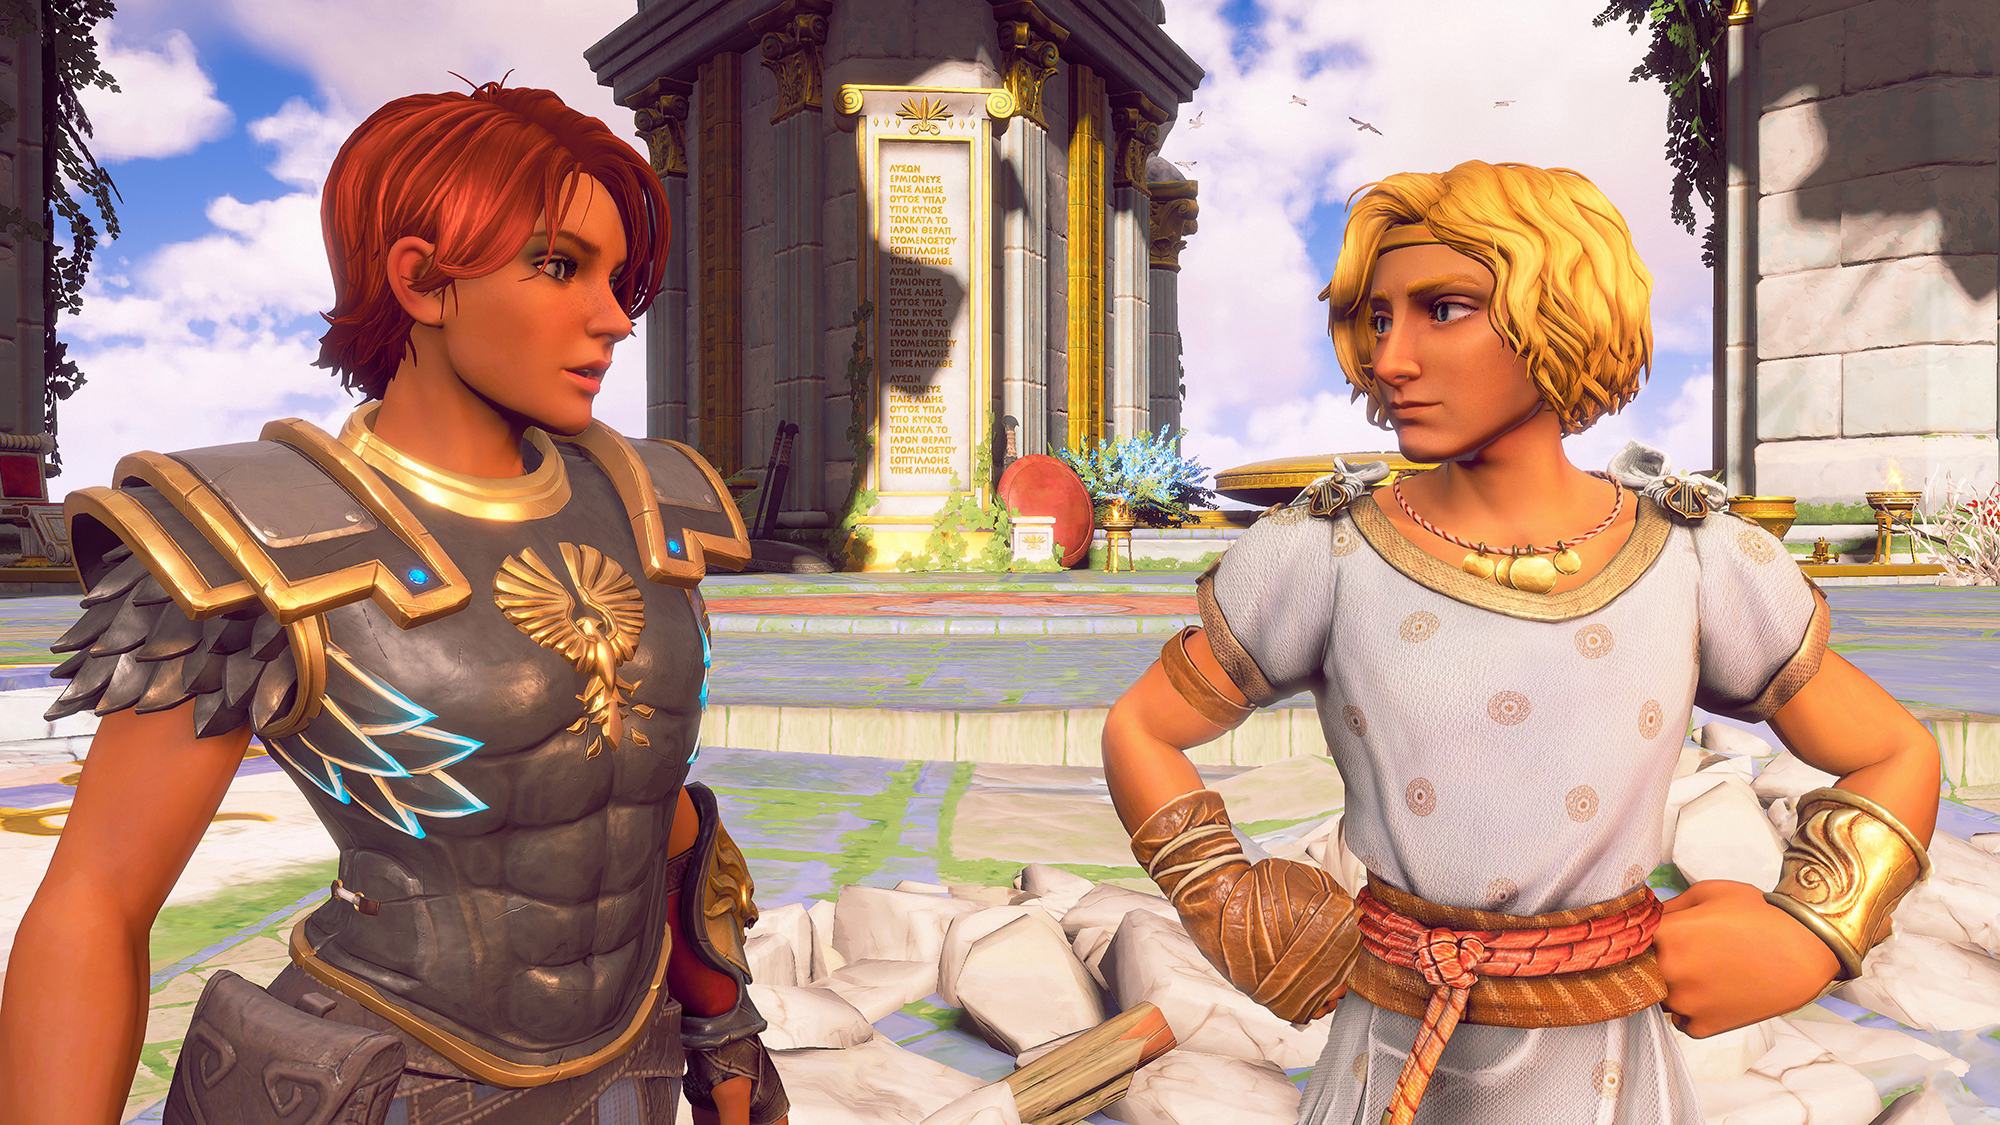 Immortals: Fenyx Rising: WALKTHROUGH OF THE MYTHICAL CHALLENGES OF BRISANTS